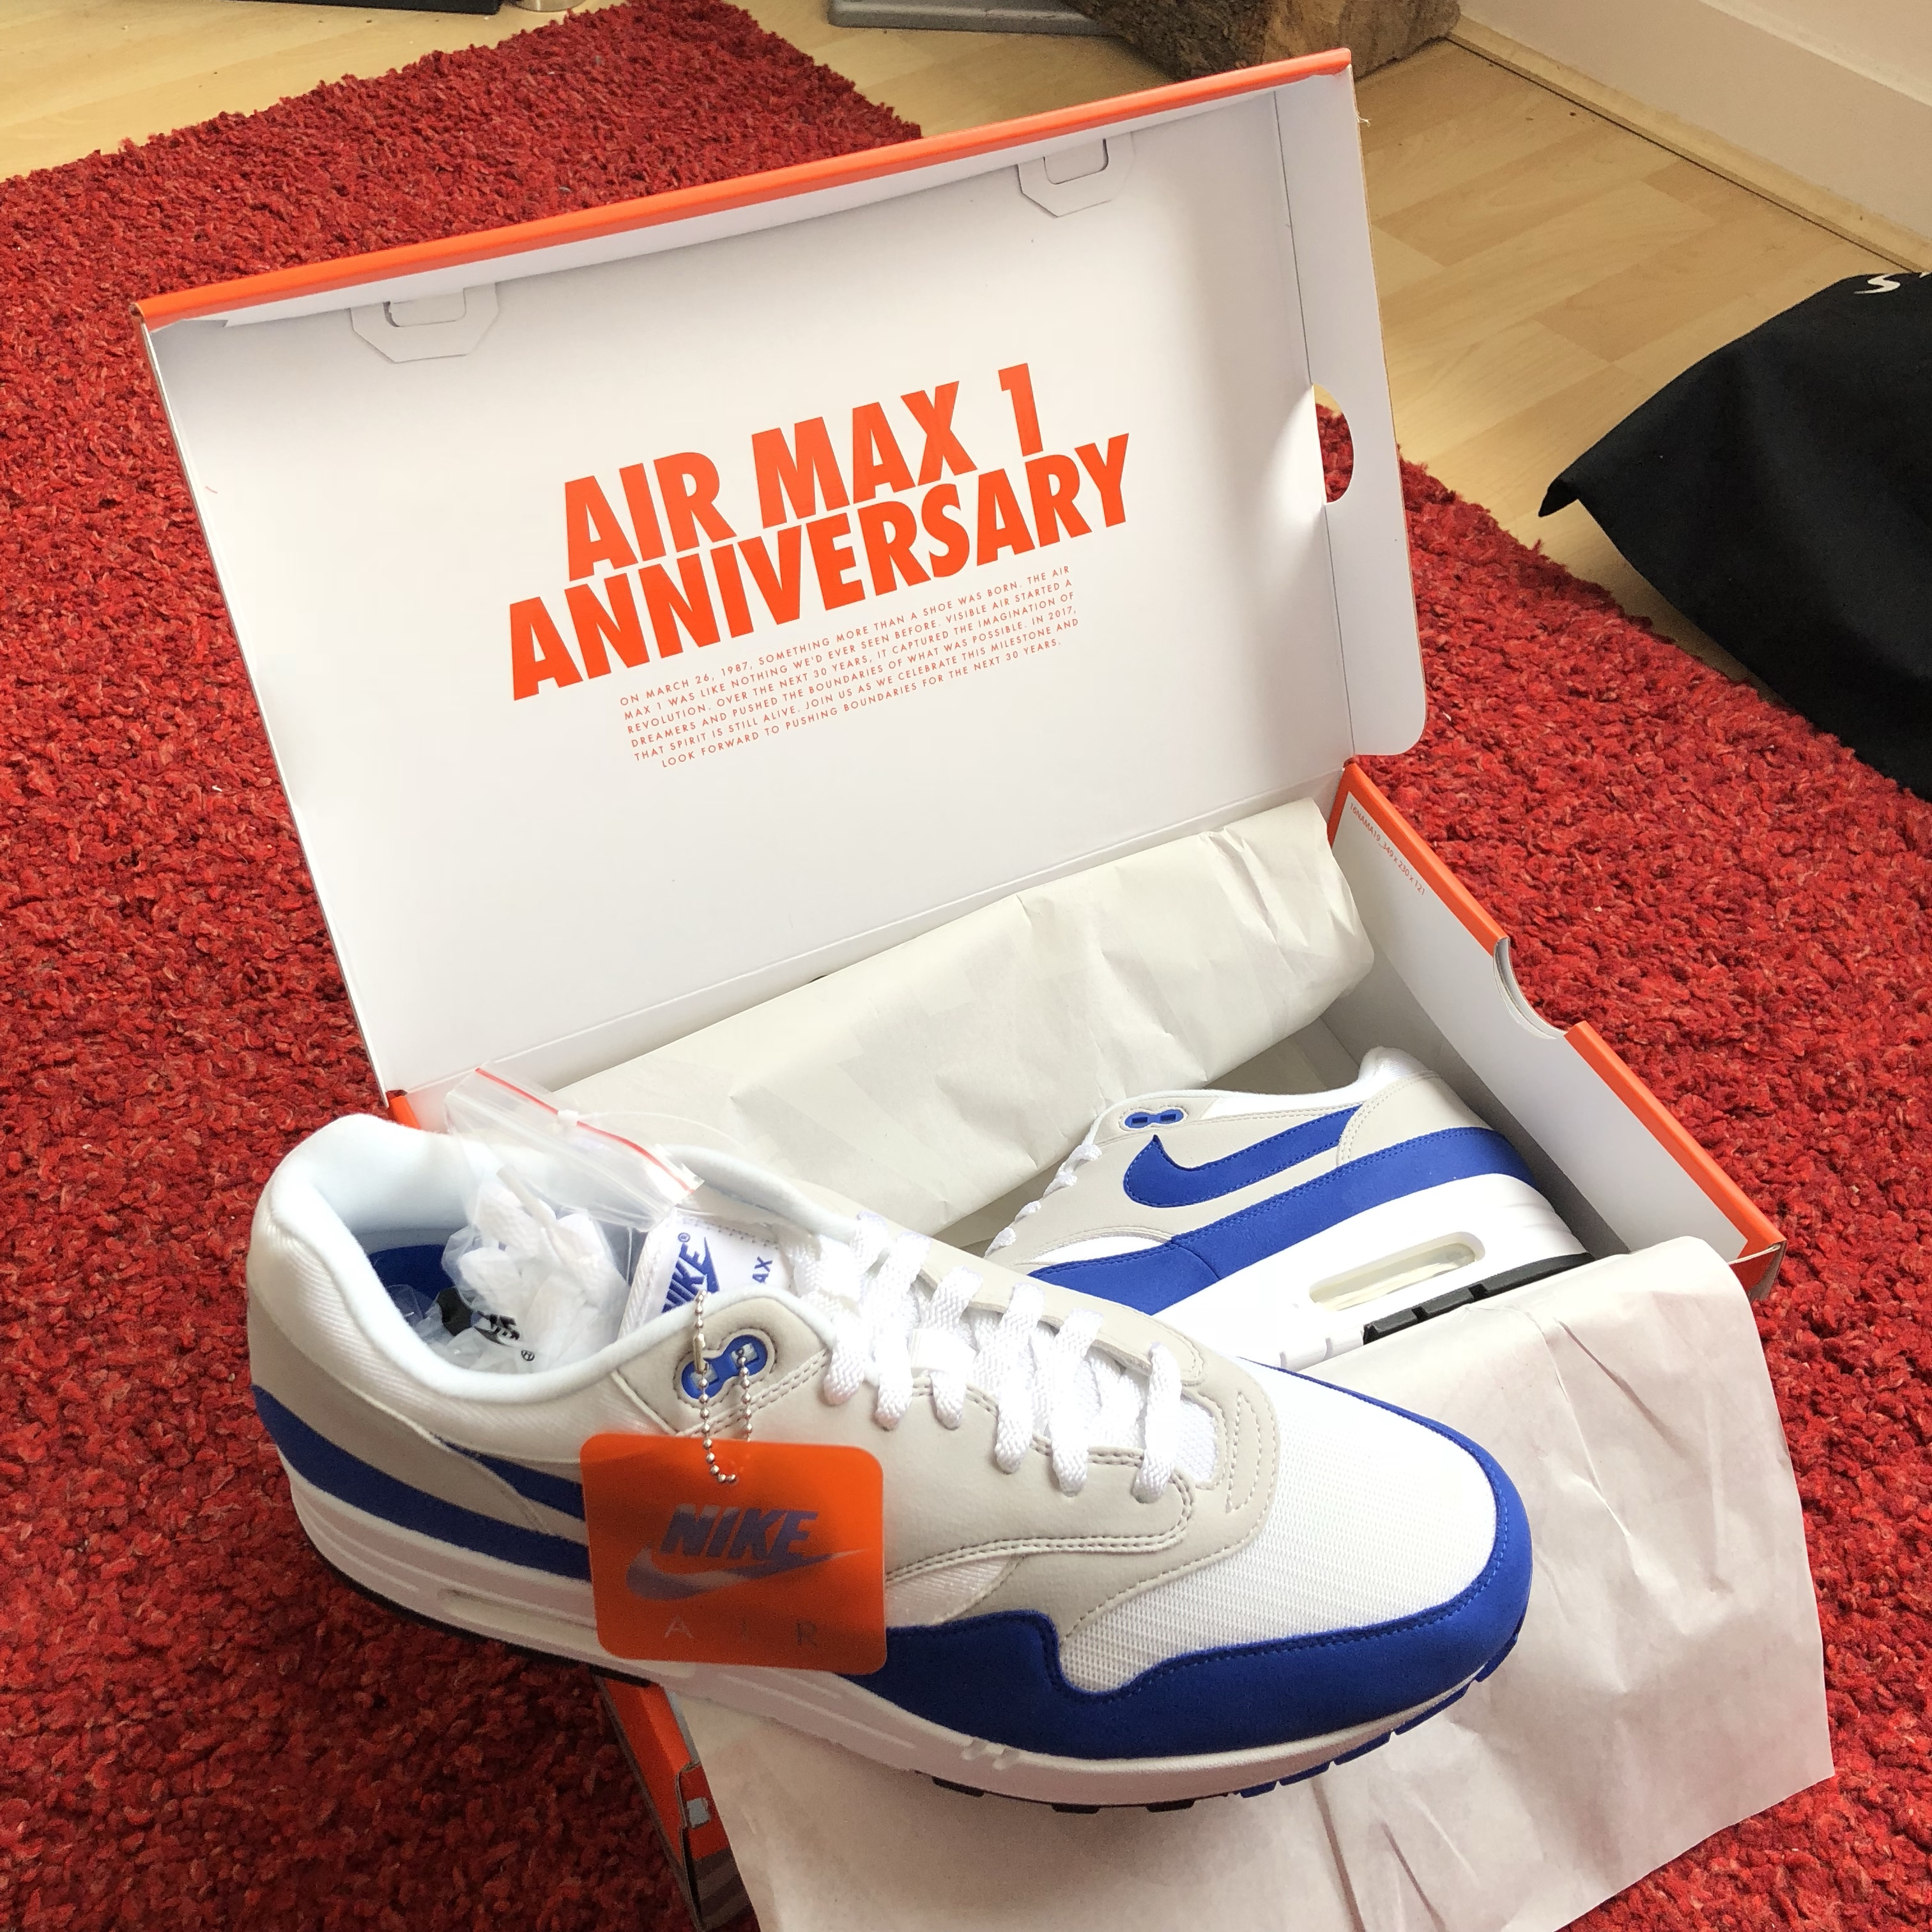 Nike Air Max 1 Anniversary OG Blue Deadstock Can't Depop